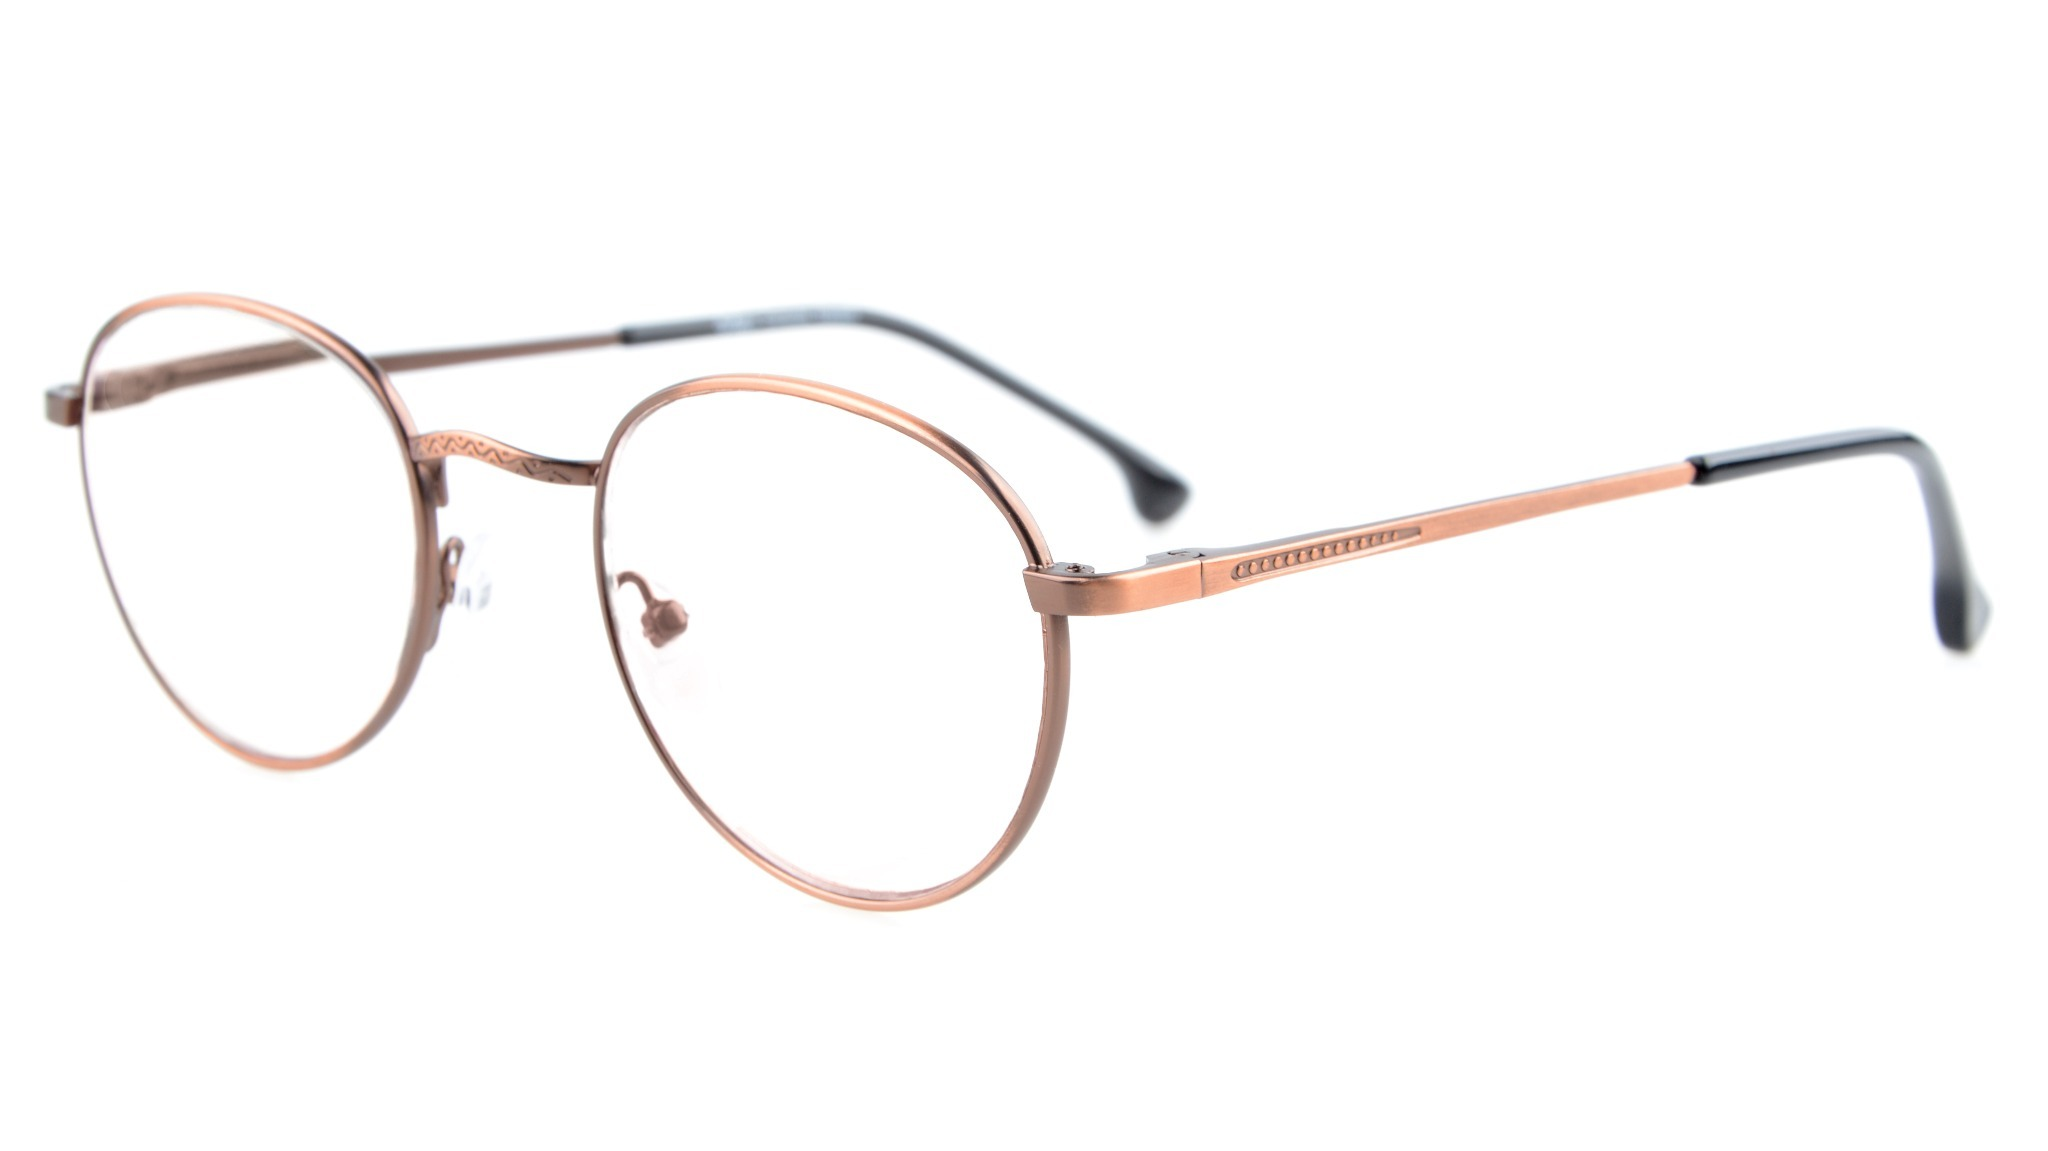 Eyekepper Oval Round Quality Spring Hinges Glasses Eyeglasses Frame R1620-Anti Bronze-0.0